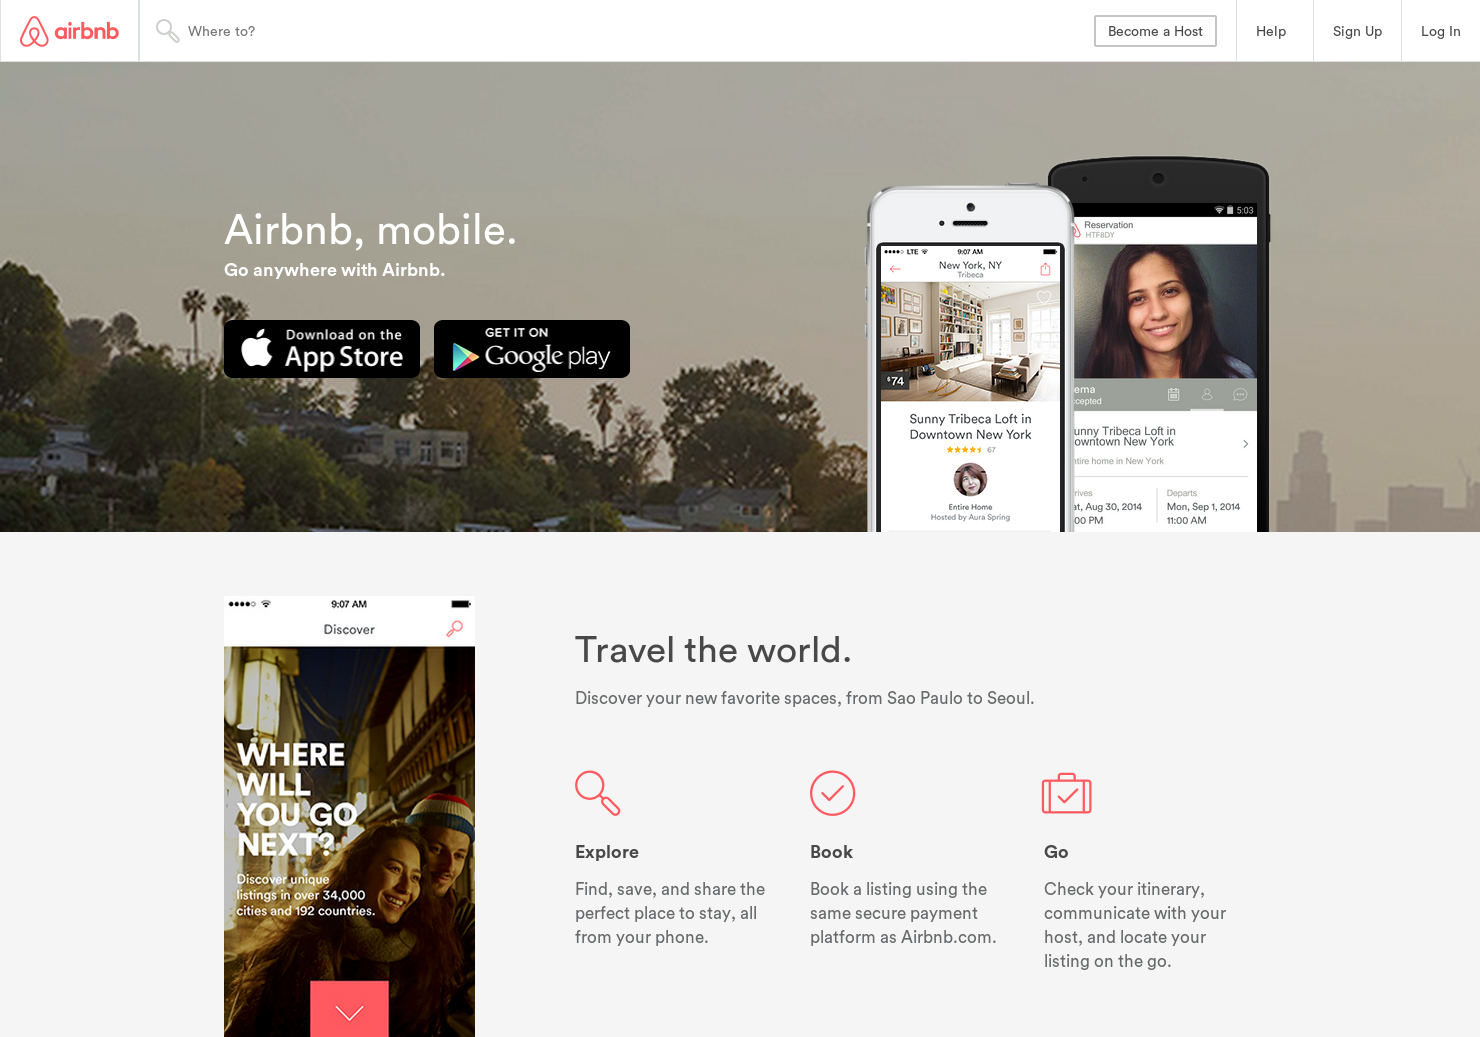 Airbnb for iPad - A new design experience for travelers and